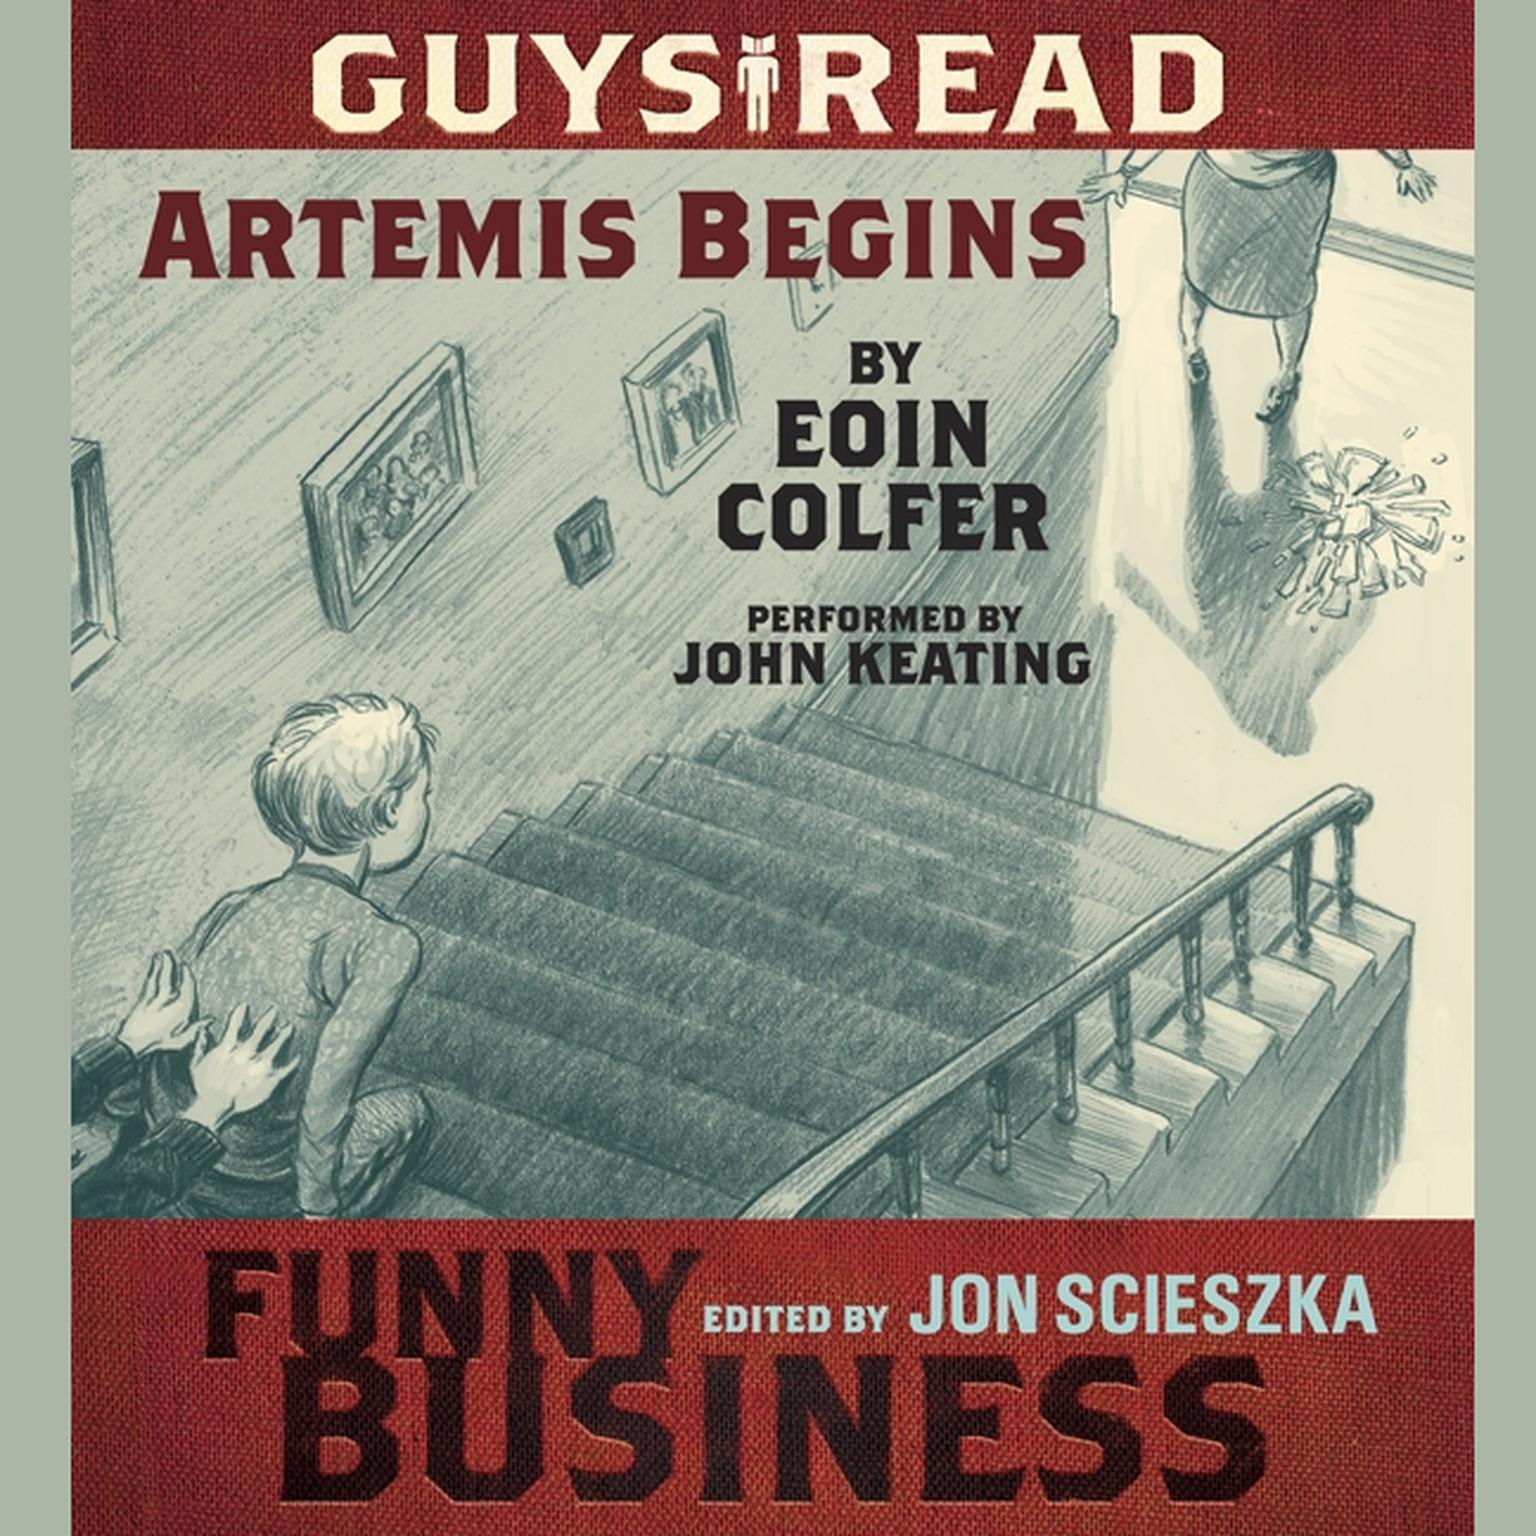 Printable Guys Read: Artemis Begins: A Story from Guys Read: Funny Business Audiobook Cover Art